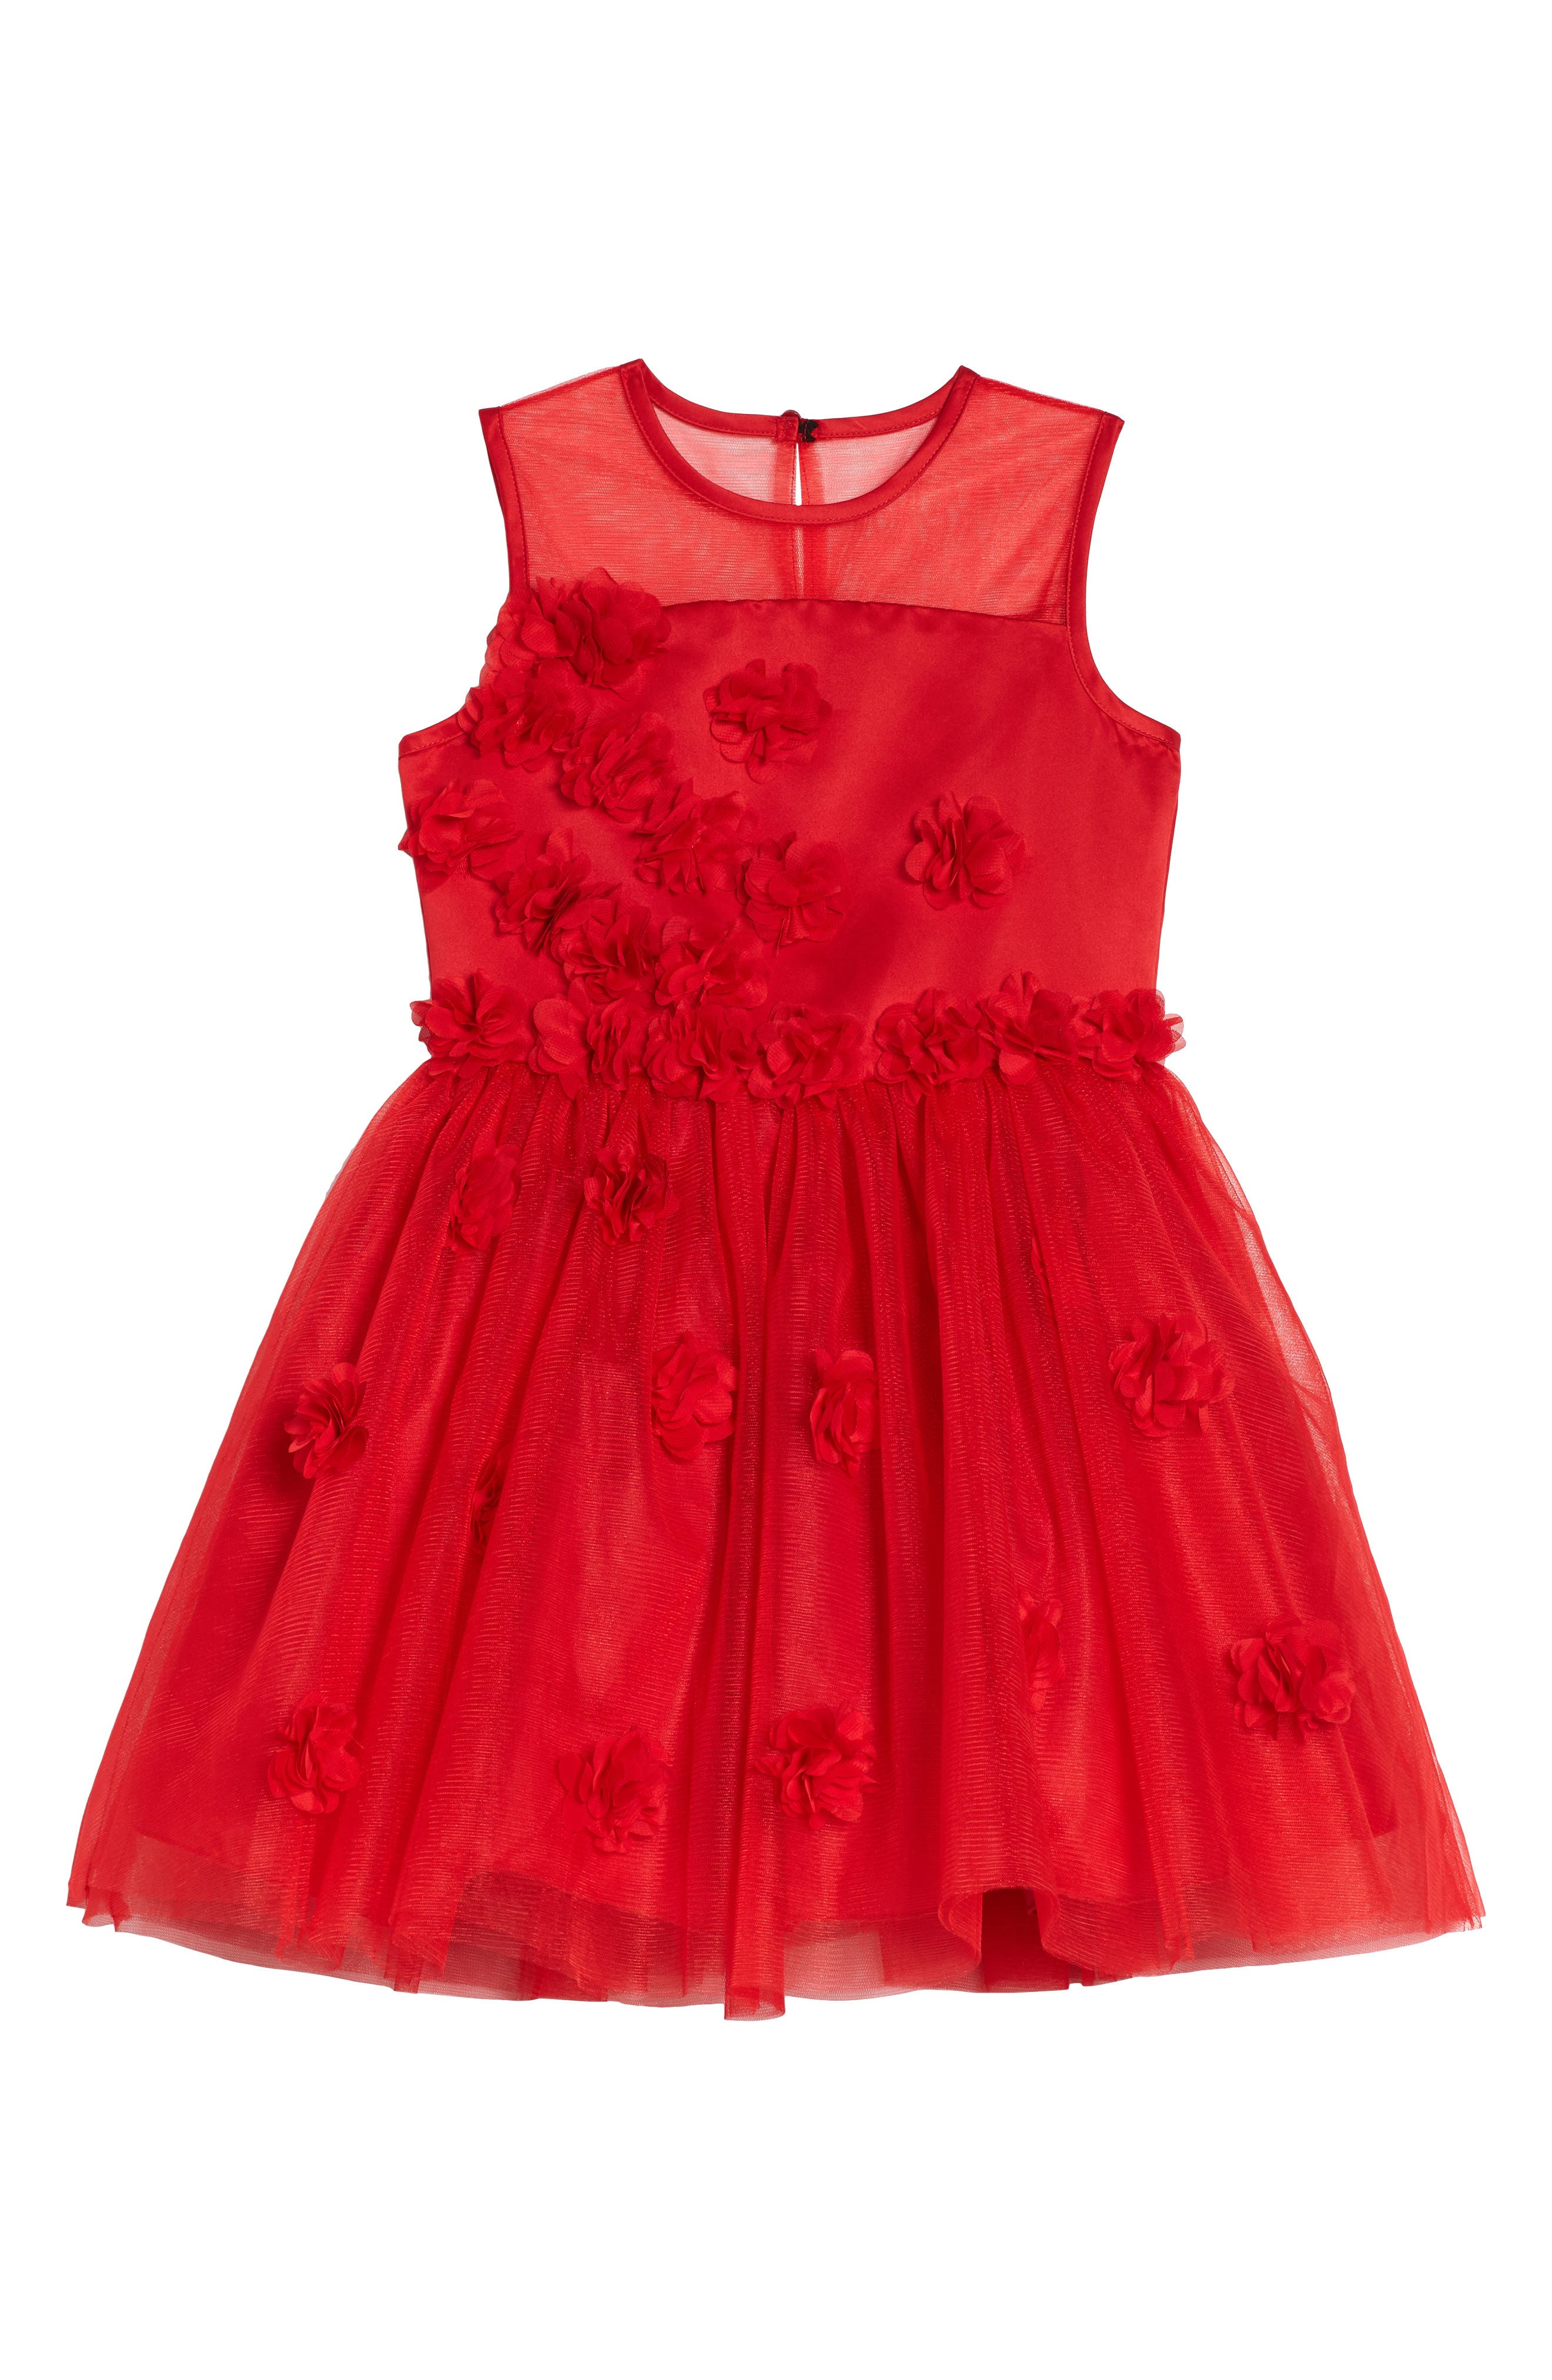 Floral Embellished Sleeveless Dress,                             Main thumbnail 1, color,                             Red